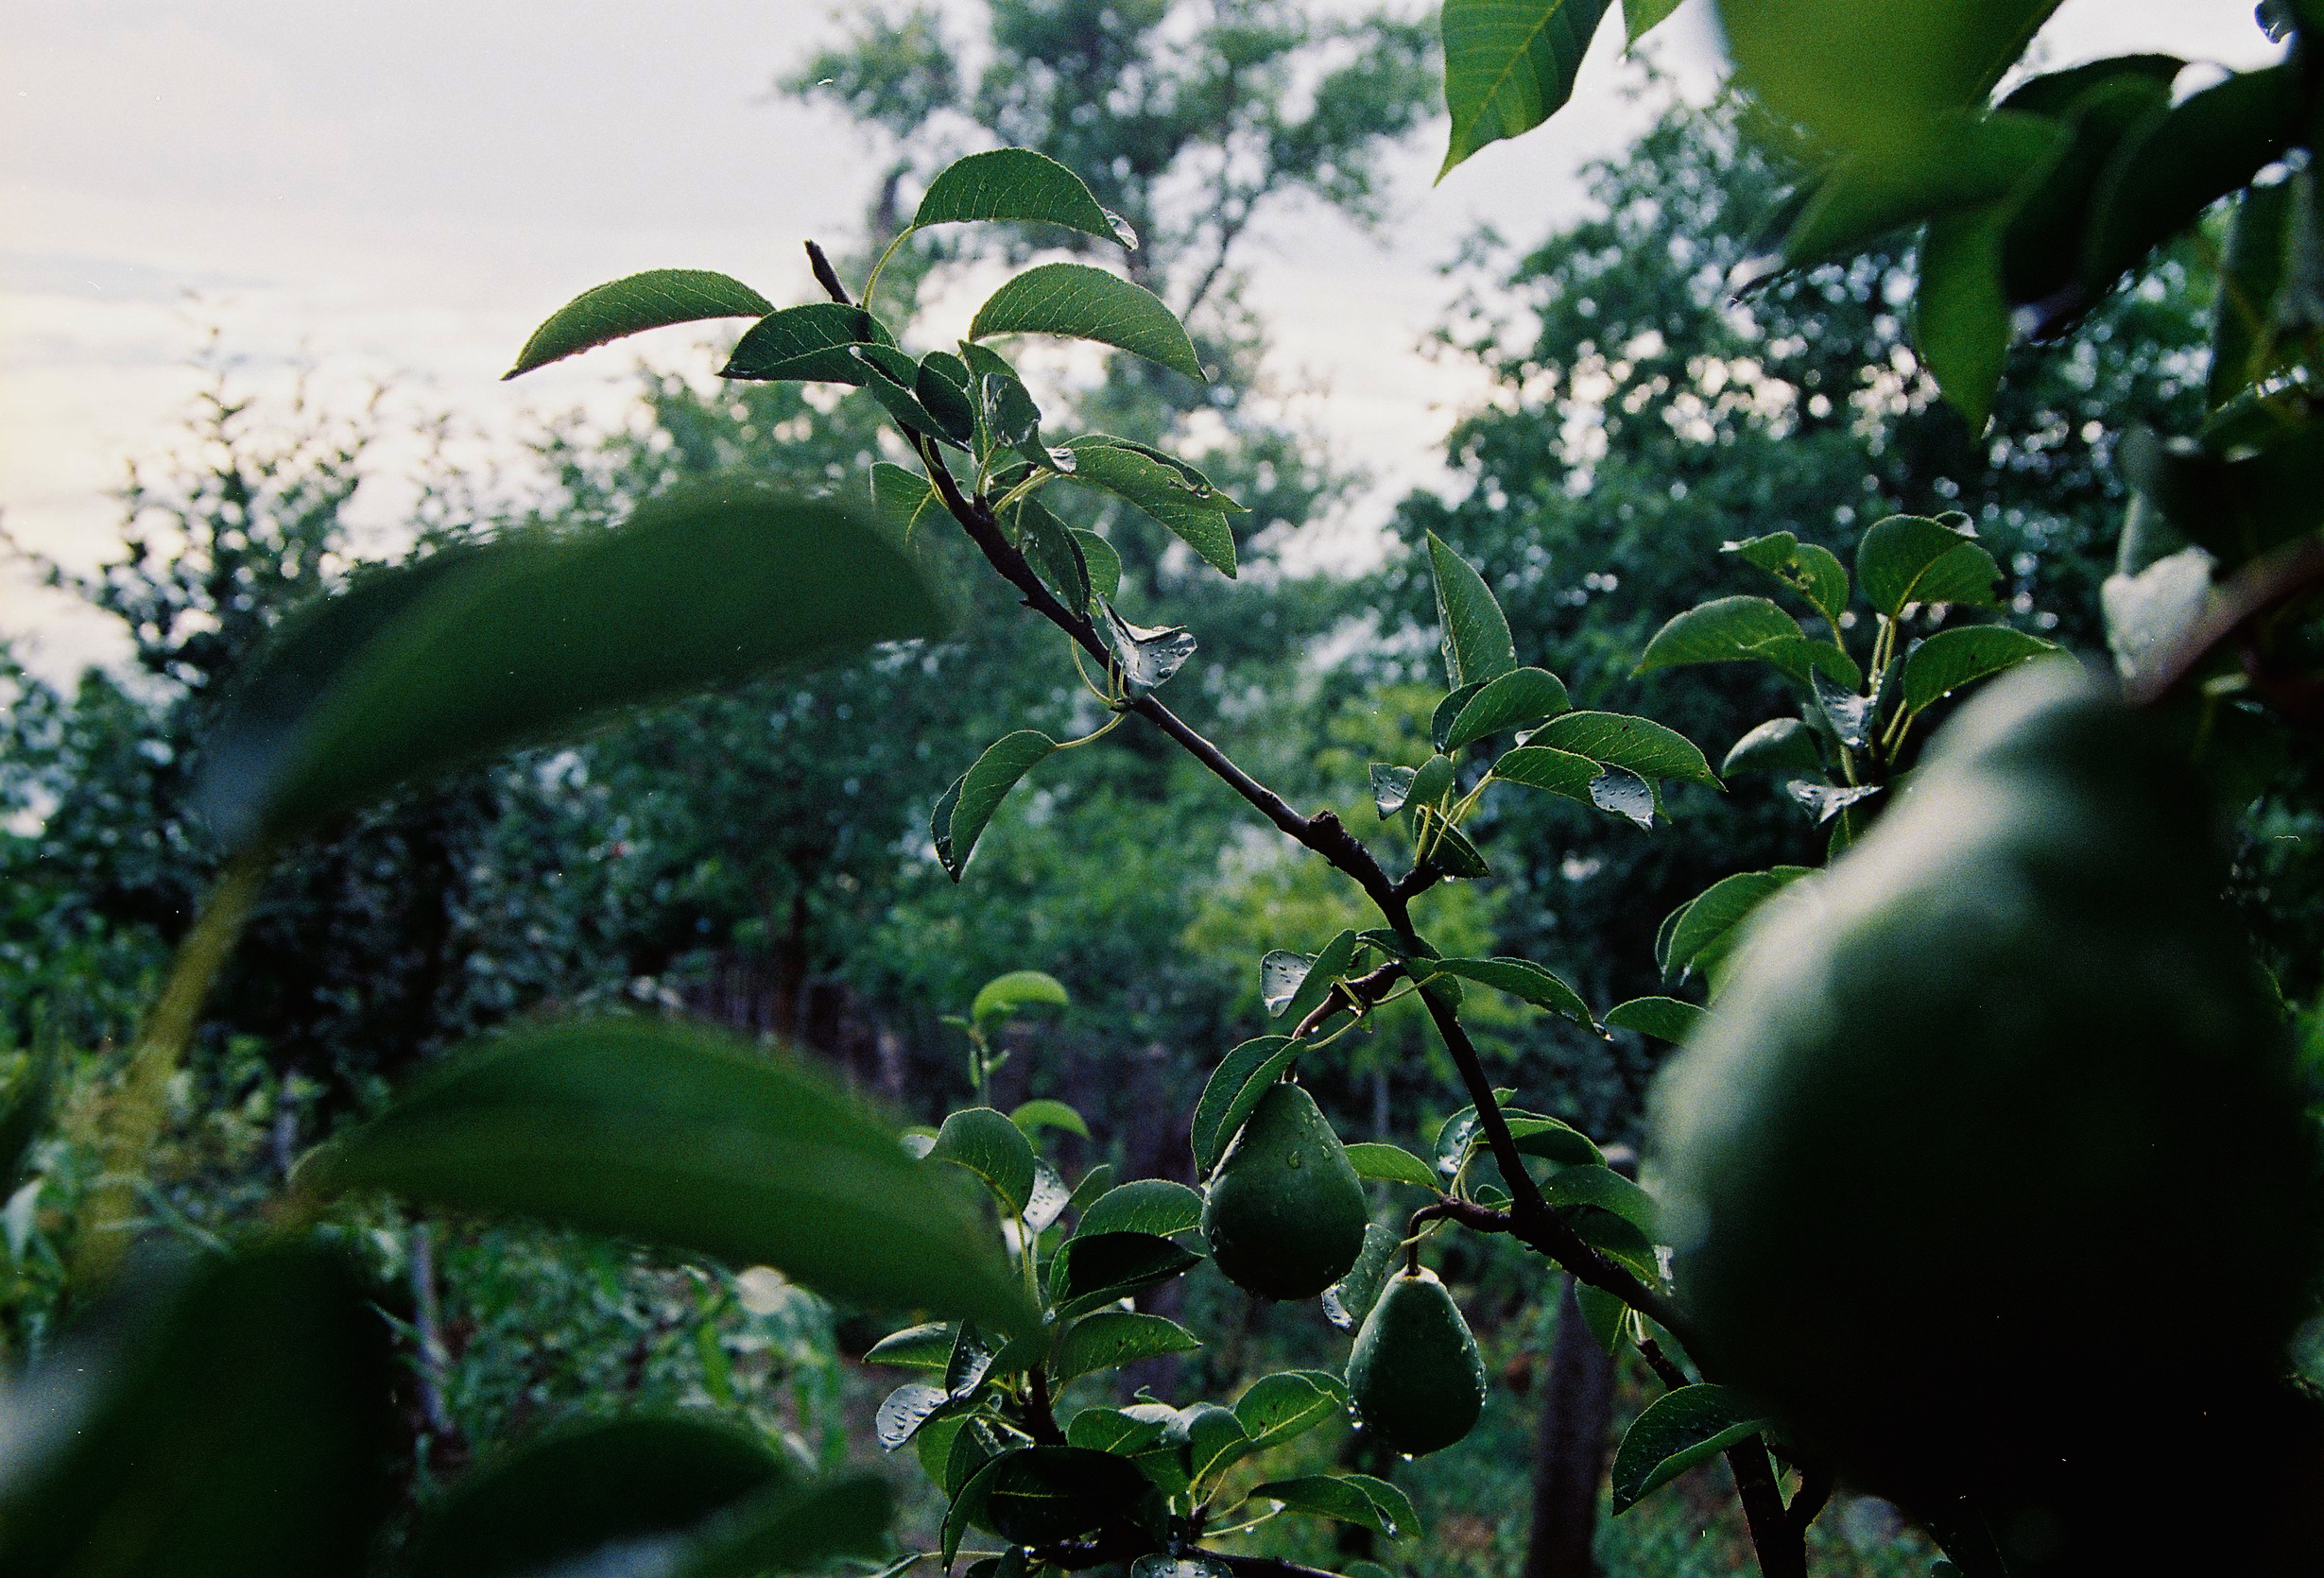 Pears After Rain by Dann Ghe Orghita:  This pear tree was photographed in my grandma's garden. Every year, without failing, it gives incredibly beautiful and tasty pears. It made me think that if I respect and give a chance to nature, nature will never fail to respond and nurture me back. It's the same in all Life's situations